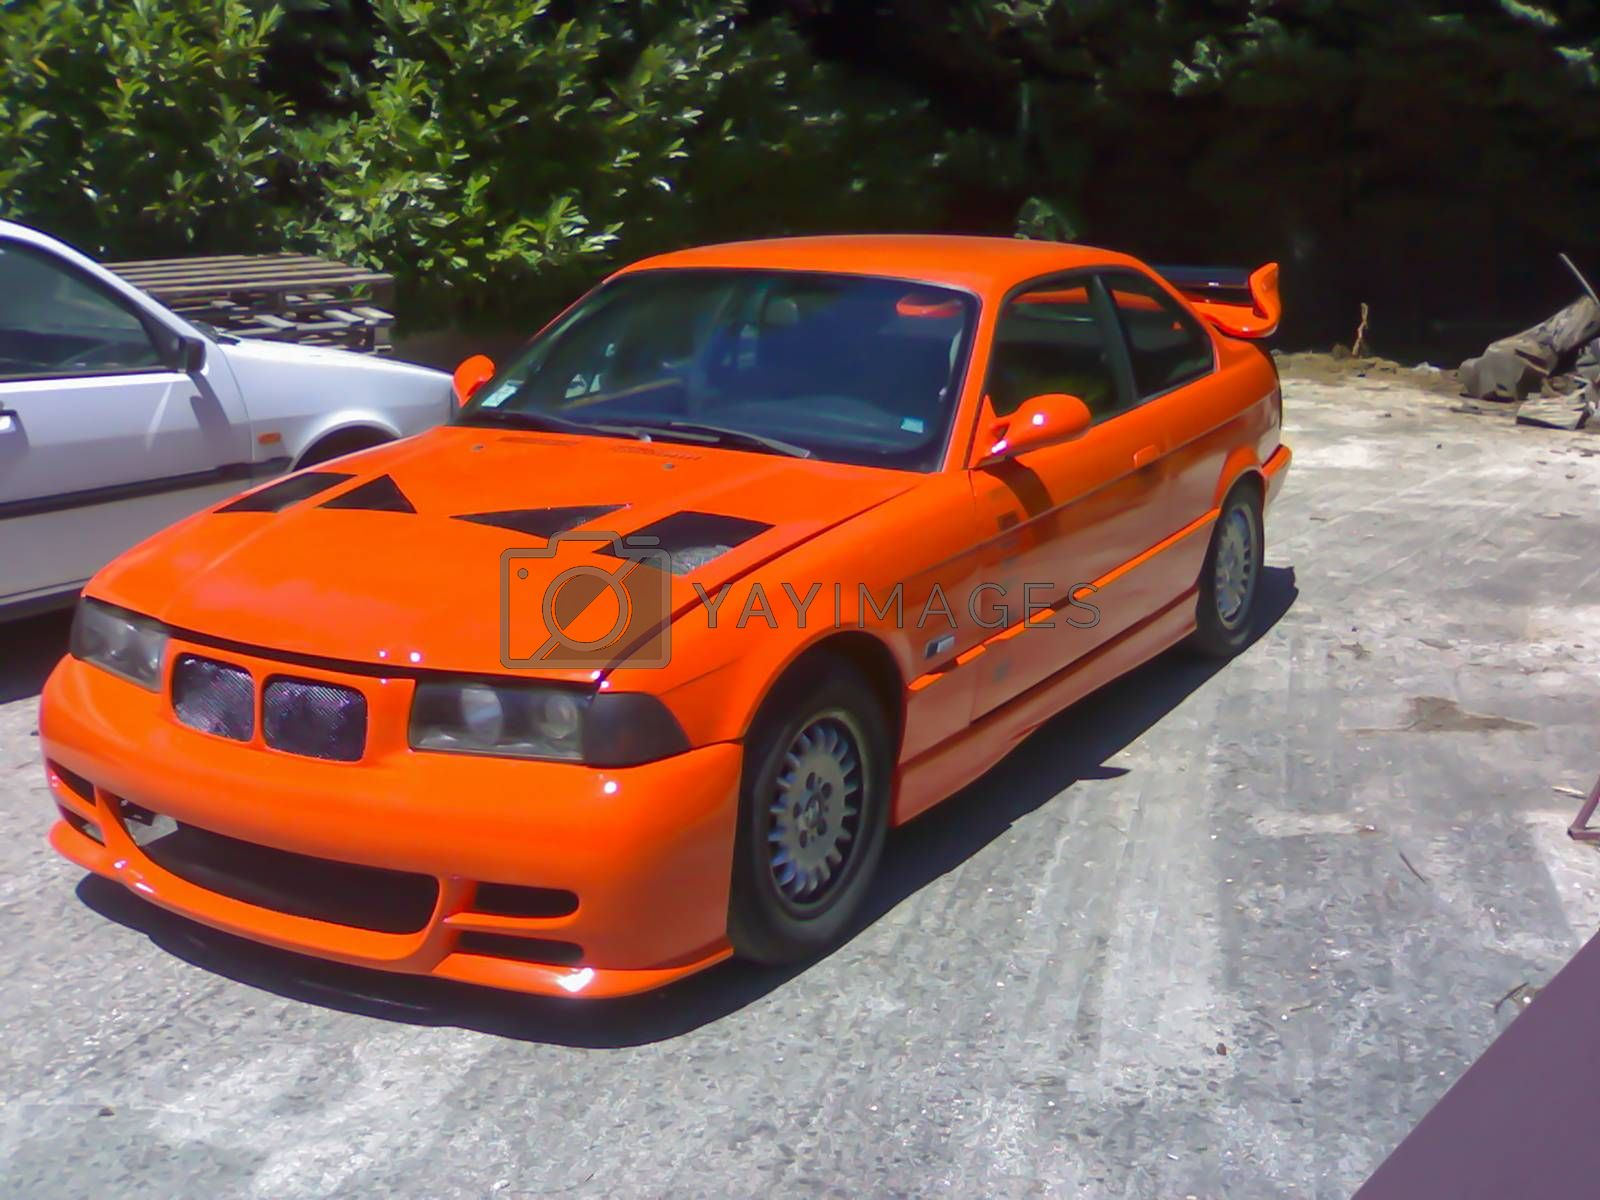 terni,italy august 18 2020:bmw tuning of bright orange properties